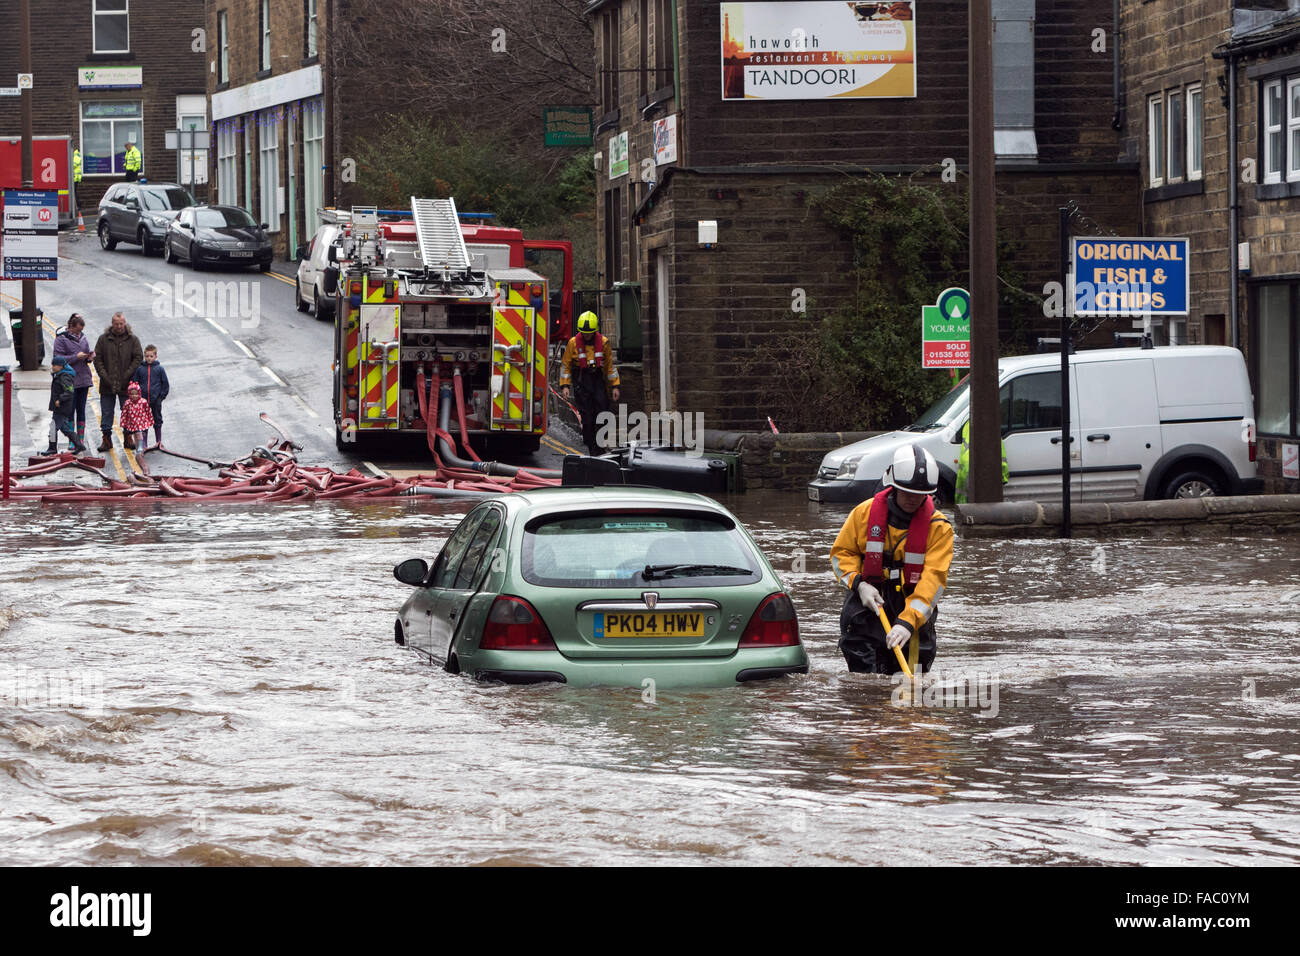 Haworth, UK. 26 December 2105. A firefighter makes his way through floods at Haworth, West Yorkshire following heavy Stock Photo